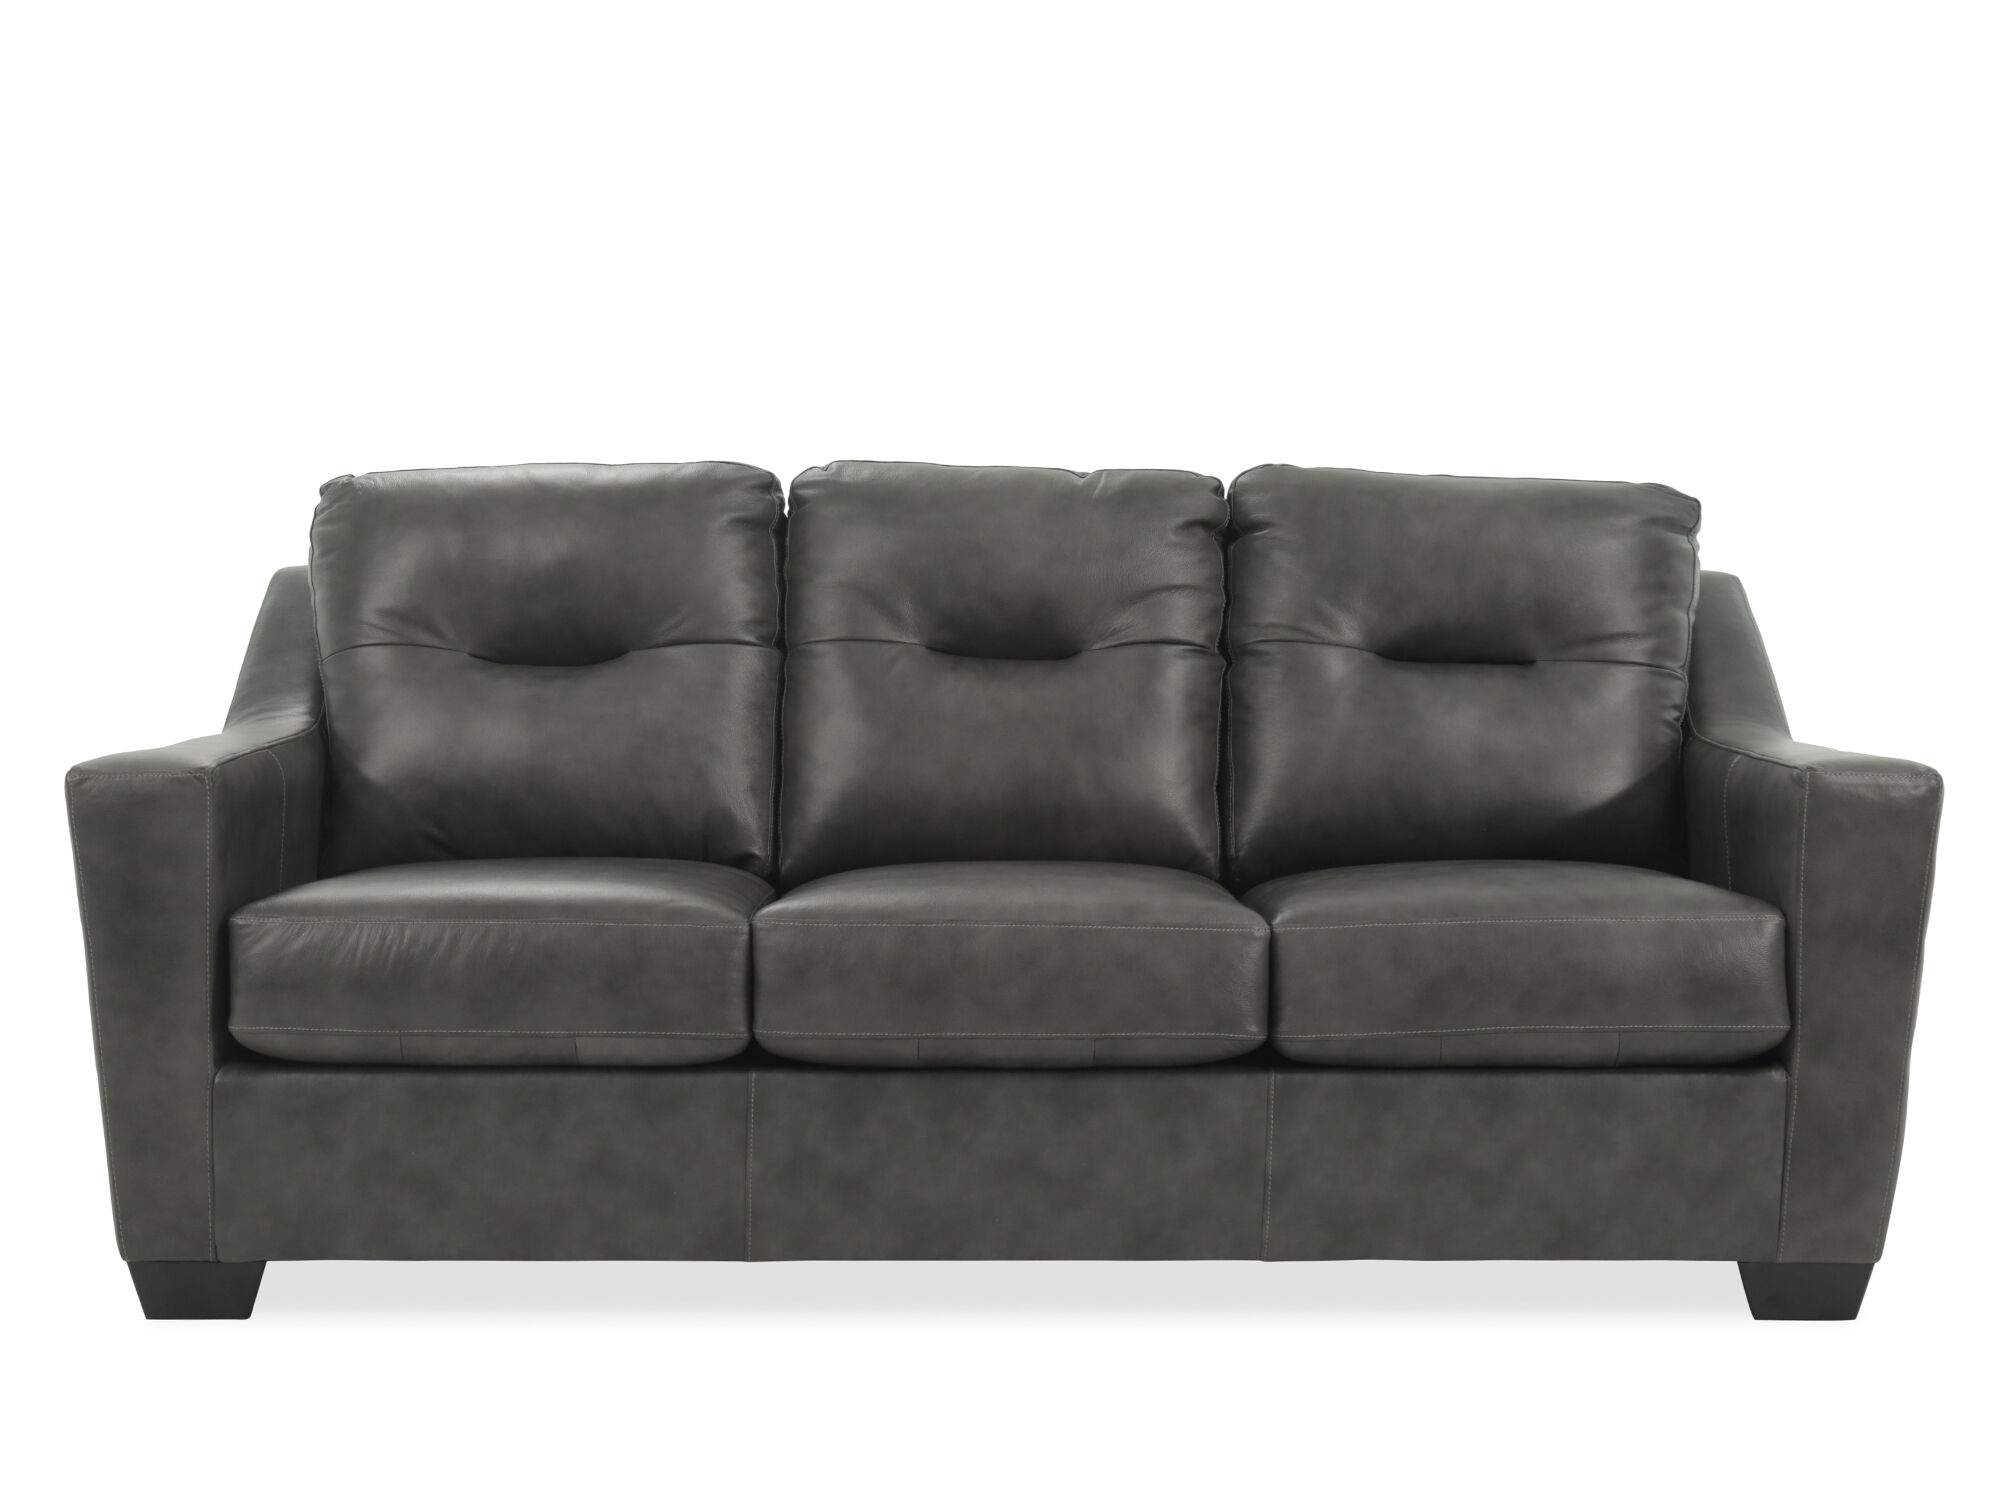 Contemporary Tufted 84u0026quot; Leather Sofa In Charcoal